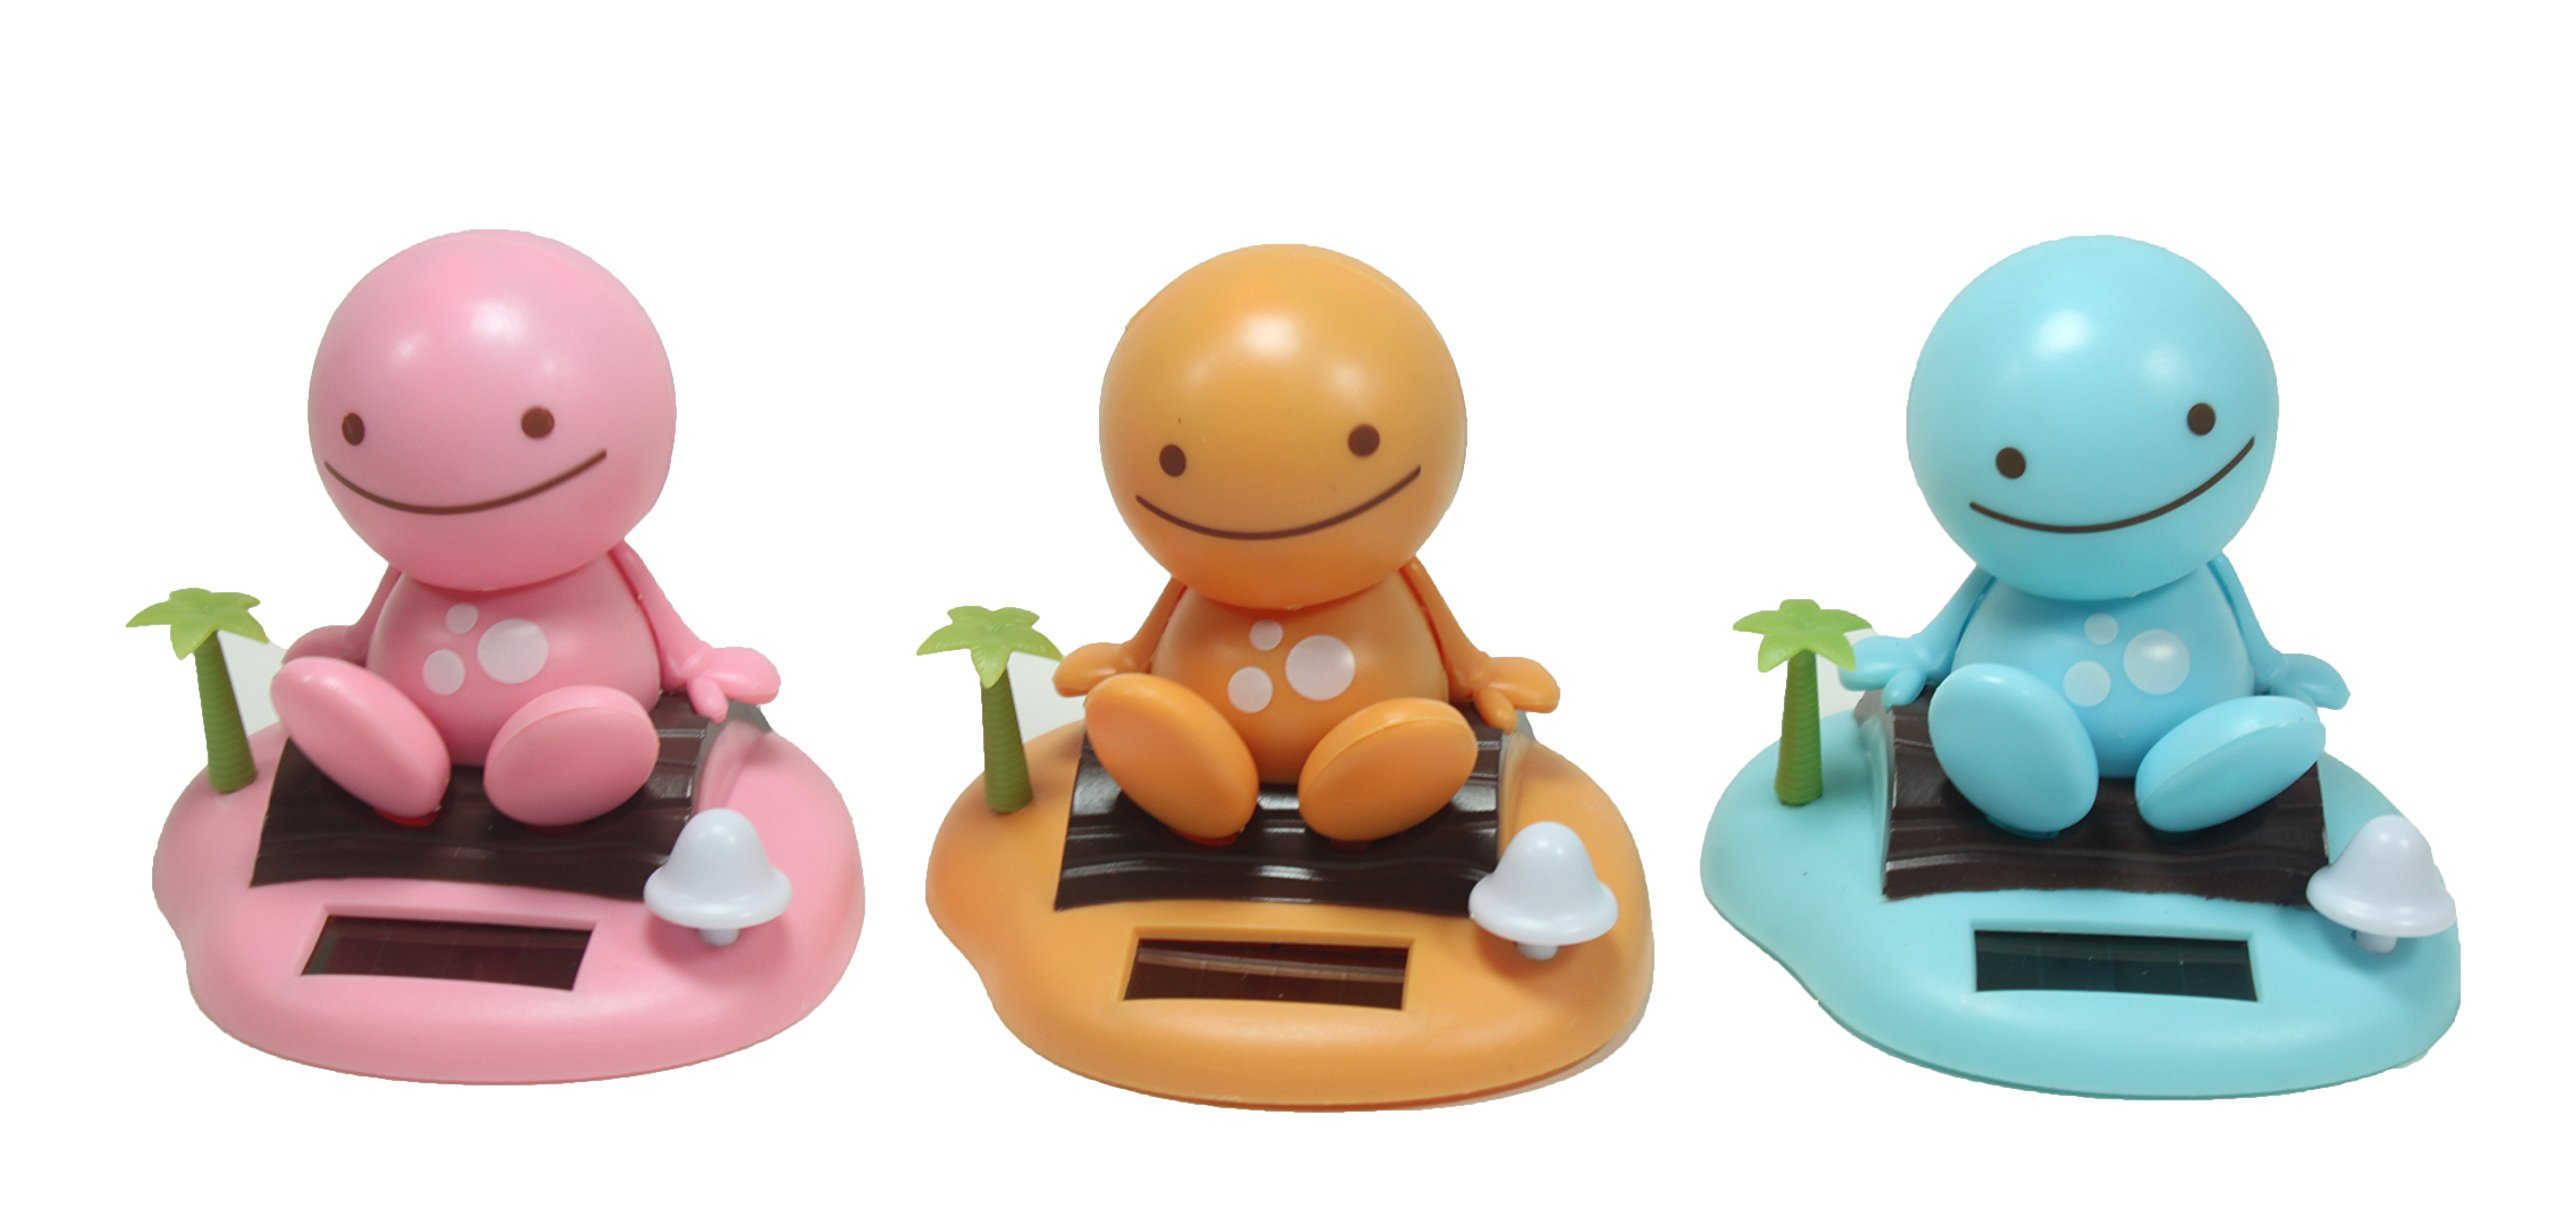 Adorable ~ Smiling Happy Face ~ 1 Blue + 1 Yellow / Orange 1 Pink Sunny Doll on a Beach Island ~ Solar Toy Perfect Home Car Decor